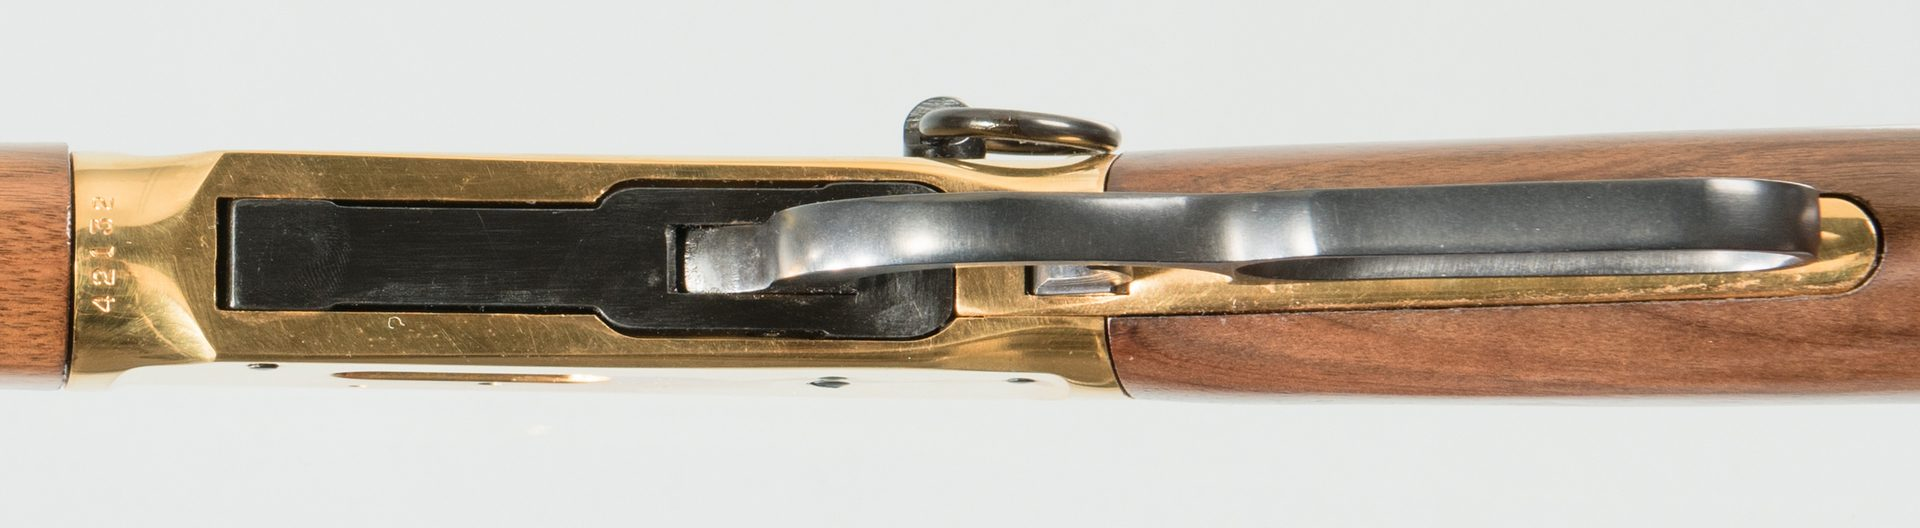 Lot 829: Winchester 94 Centennial Lever Action Rifle, 30-30